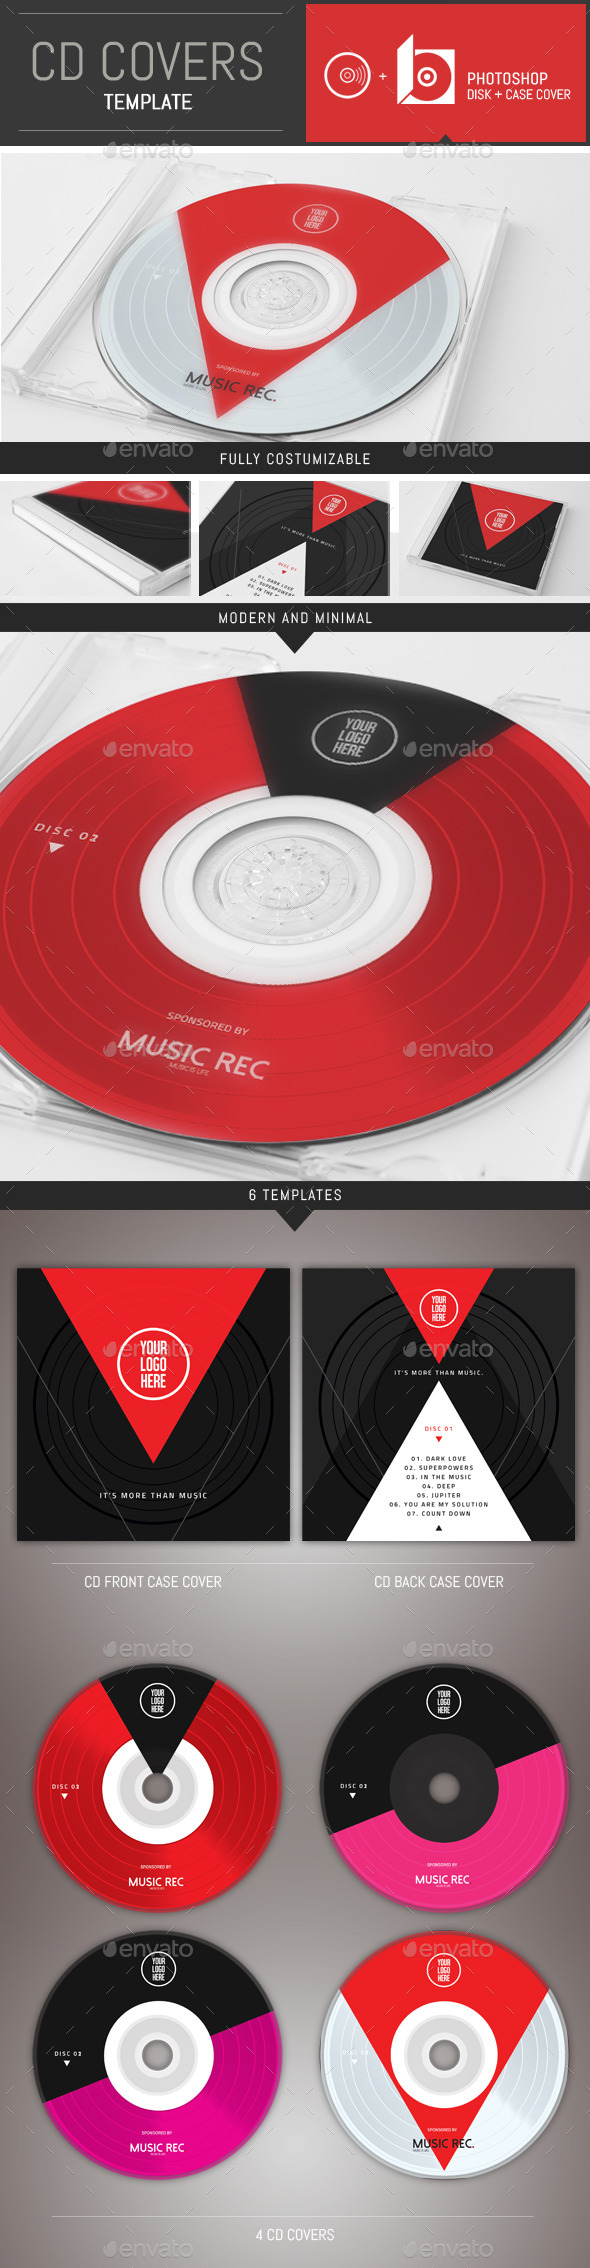 GraphicRiver Minimal Music CD Cover Template 10006670